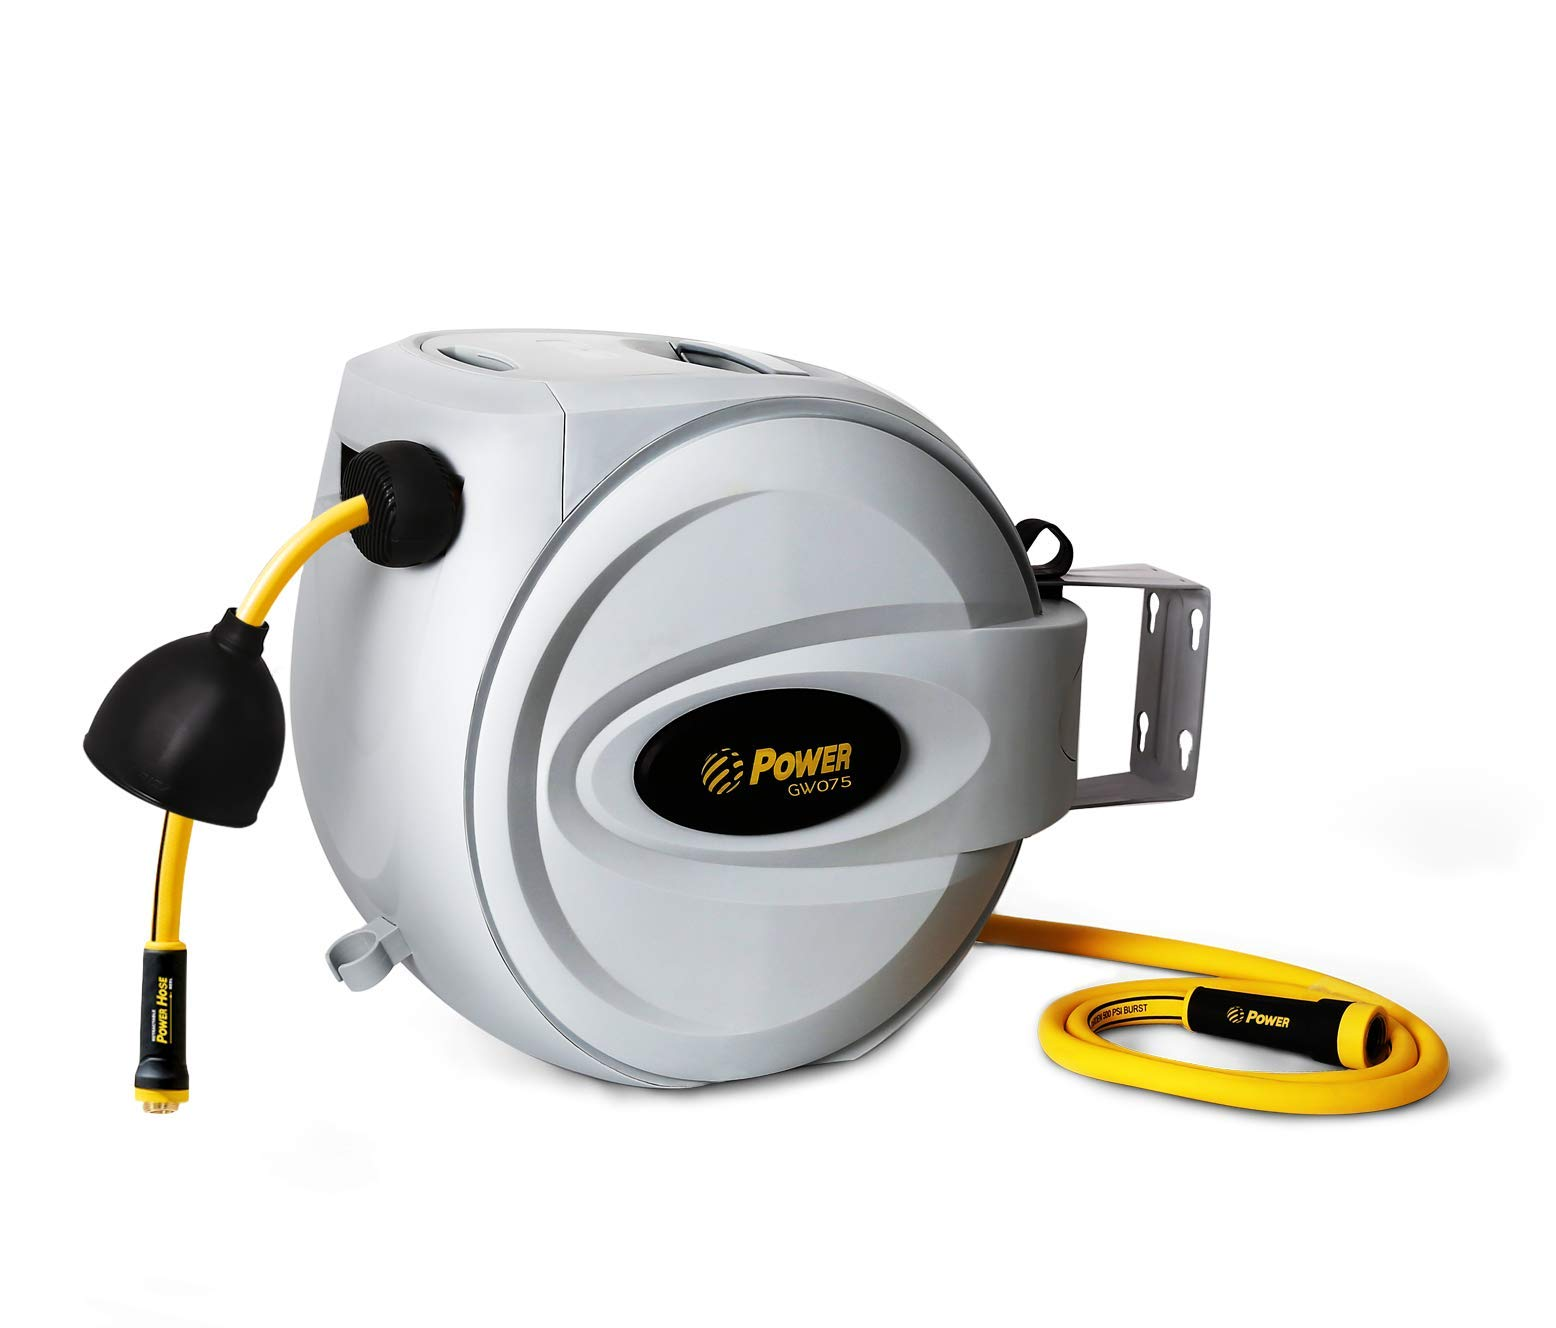 Power Retractable Hose Reel 5/8'' x 75 + 6 FT, Super Heavy Duty, 500 PSI Burst Strength, 3 Layer Hybrid Hose, Slow Return System, Exclusive Twist Collar and The Patented Nozzle Protector by Power Products USA